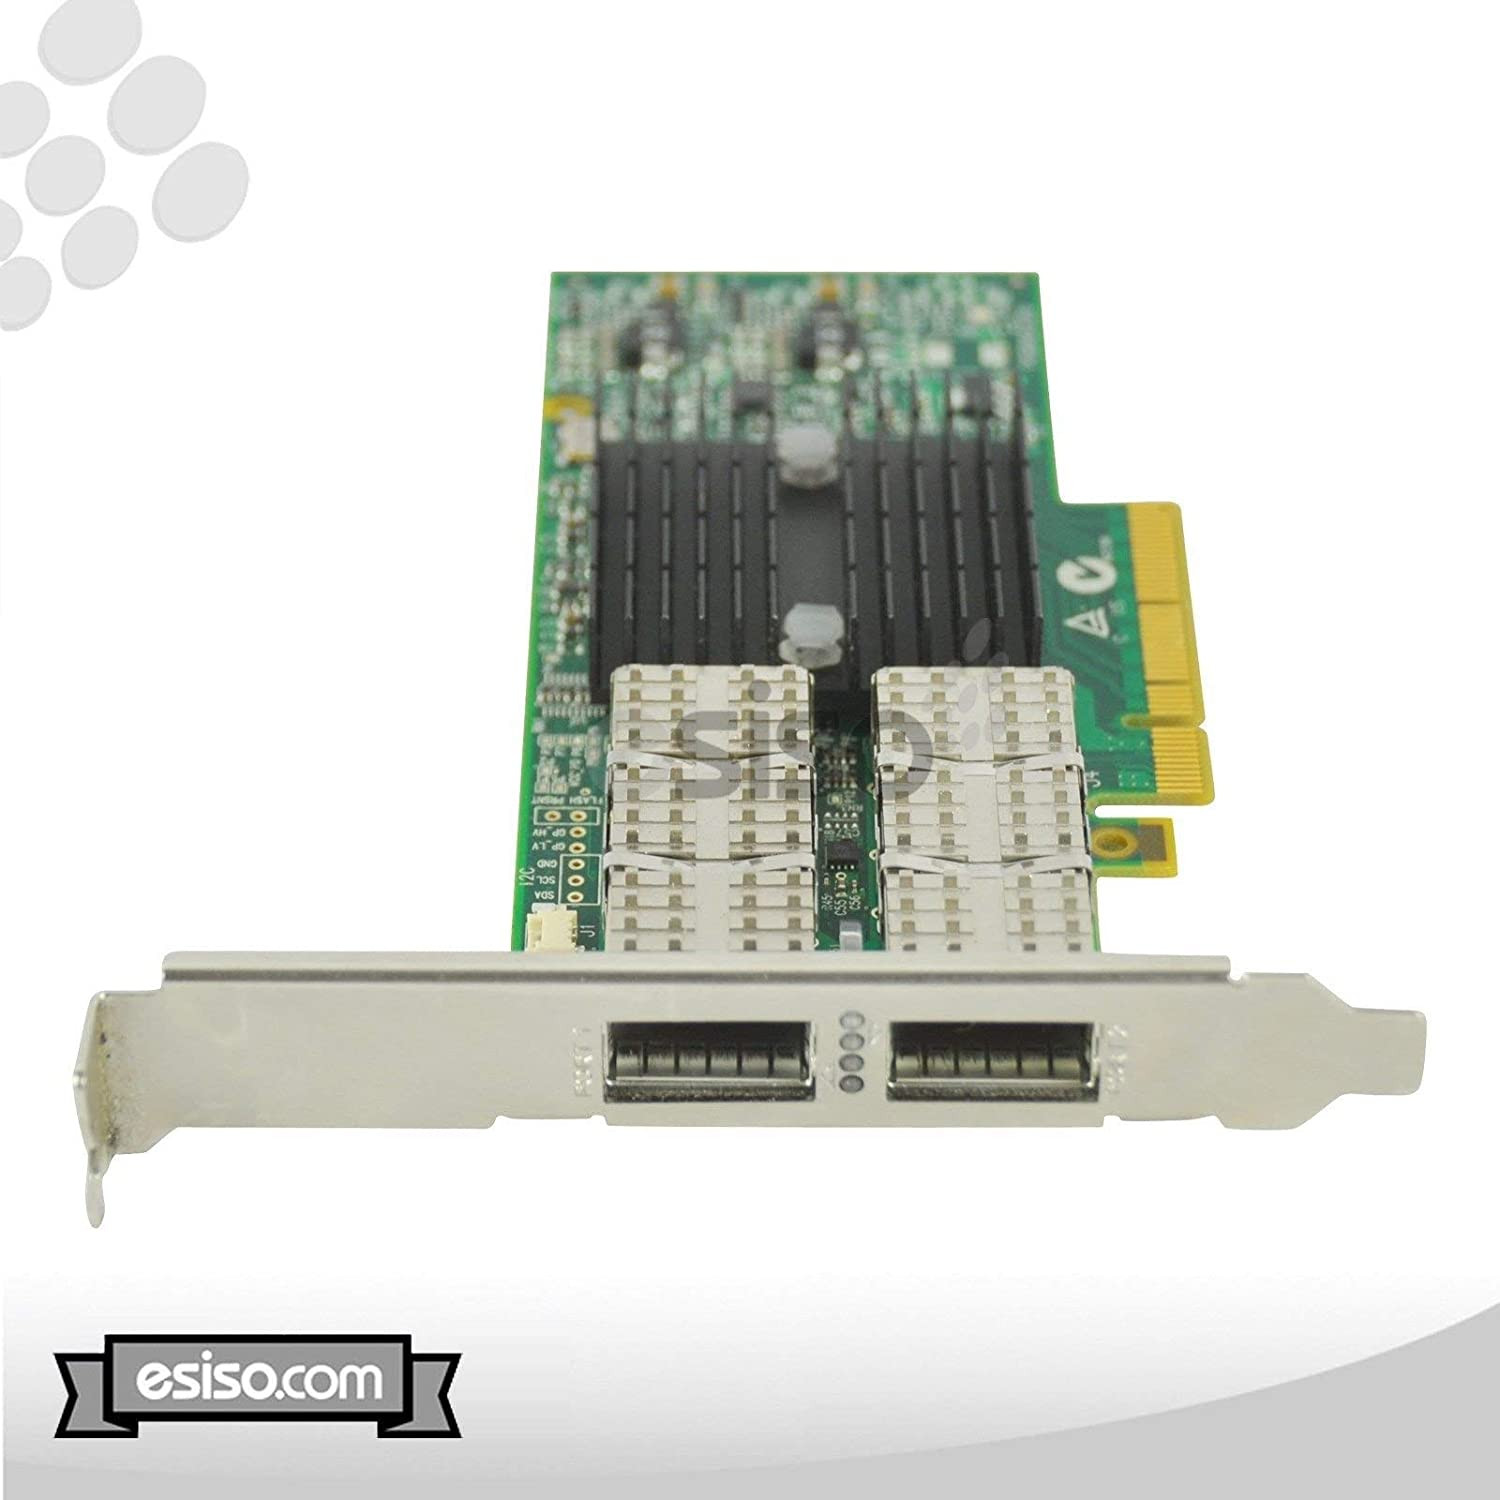 Renewed INFINIBAND FDR 2 Port Standard PCI Format HCA HP 661685-001 ETHERNET 40GbE